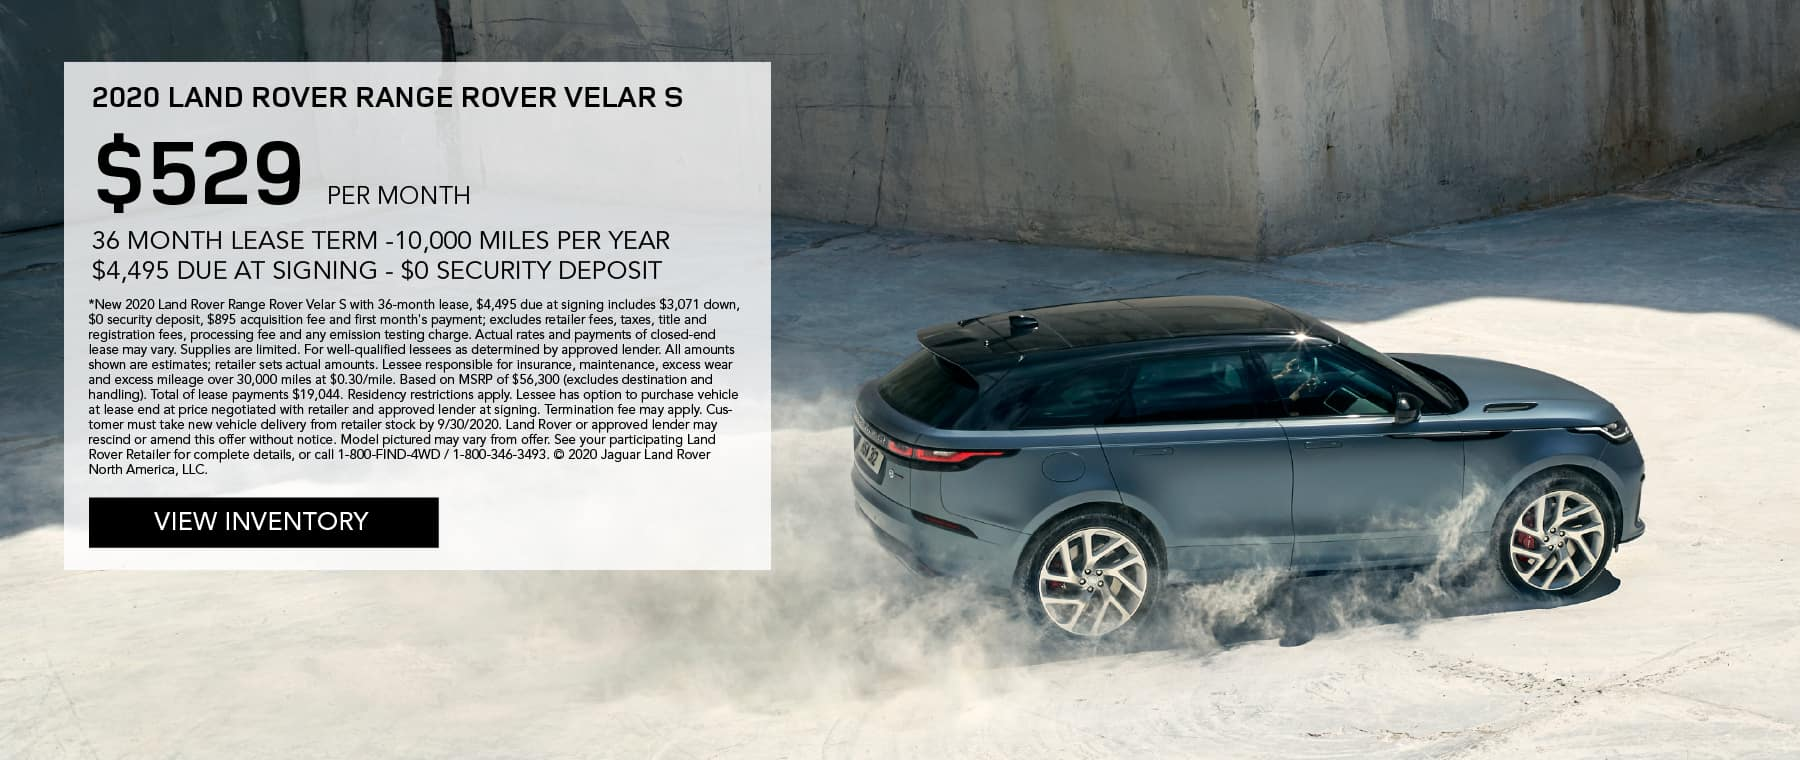 2020 RANGE ROVER VELAR S. $529 PER MONTH. 36 MONTH LEASE TERM. $4,495 CASH DUE AT SIGNING. $0 SECURITY DEPOSIT. 10,000 MILES PER YEAR. EXCLUDES RETAILER FEES, TAXES, TITLE AND REGISTRATION FEES, PROCESSING FEE AND ANY EMISSION TESTING CHARGE. ENDS 9/30/2020. VIEW INVENTORY. BLUE RANGE ROVER VELAR DRIVING THROUGH SAND.